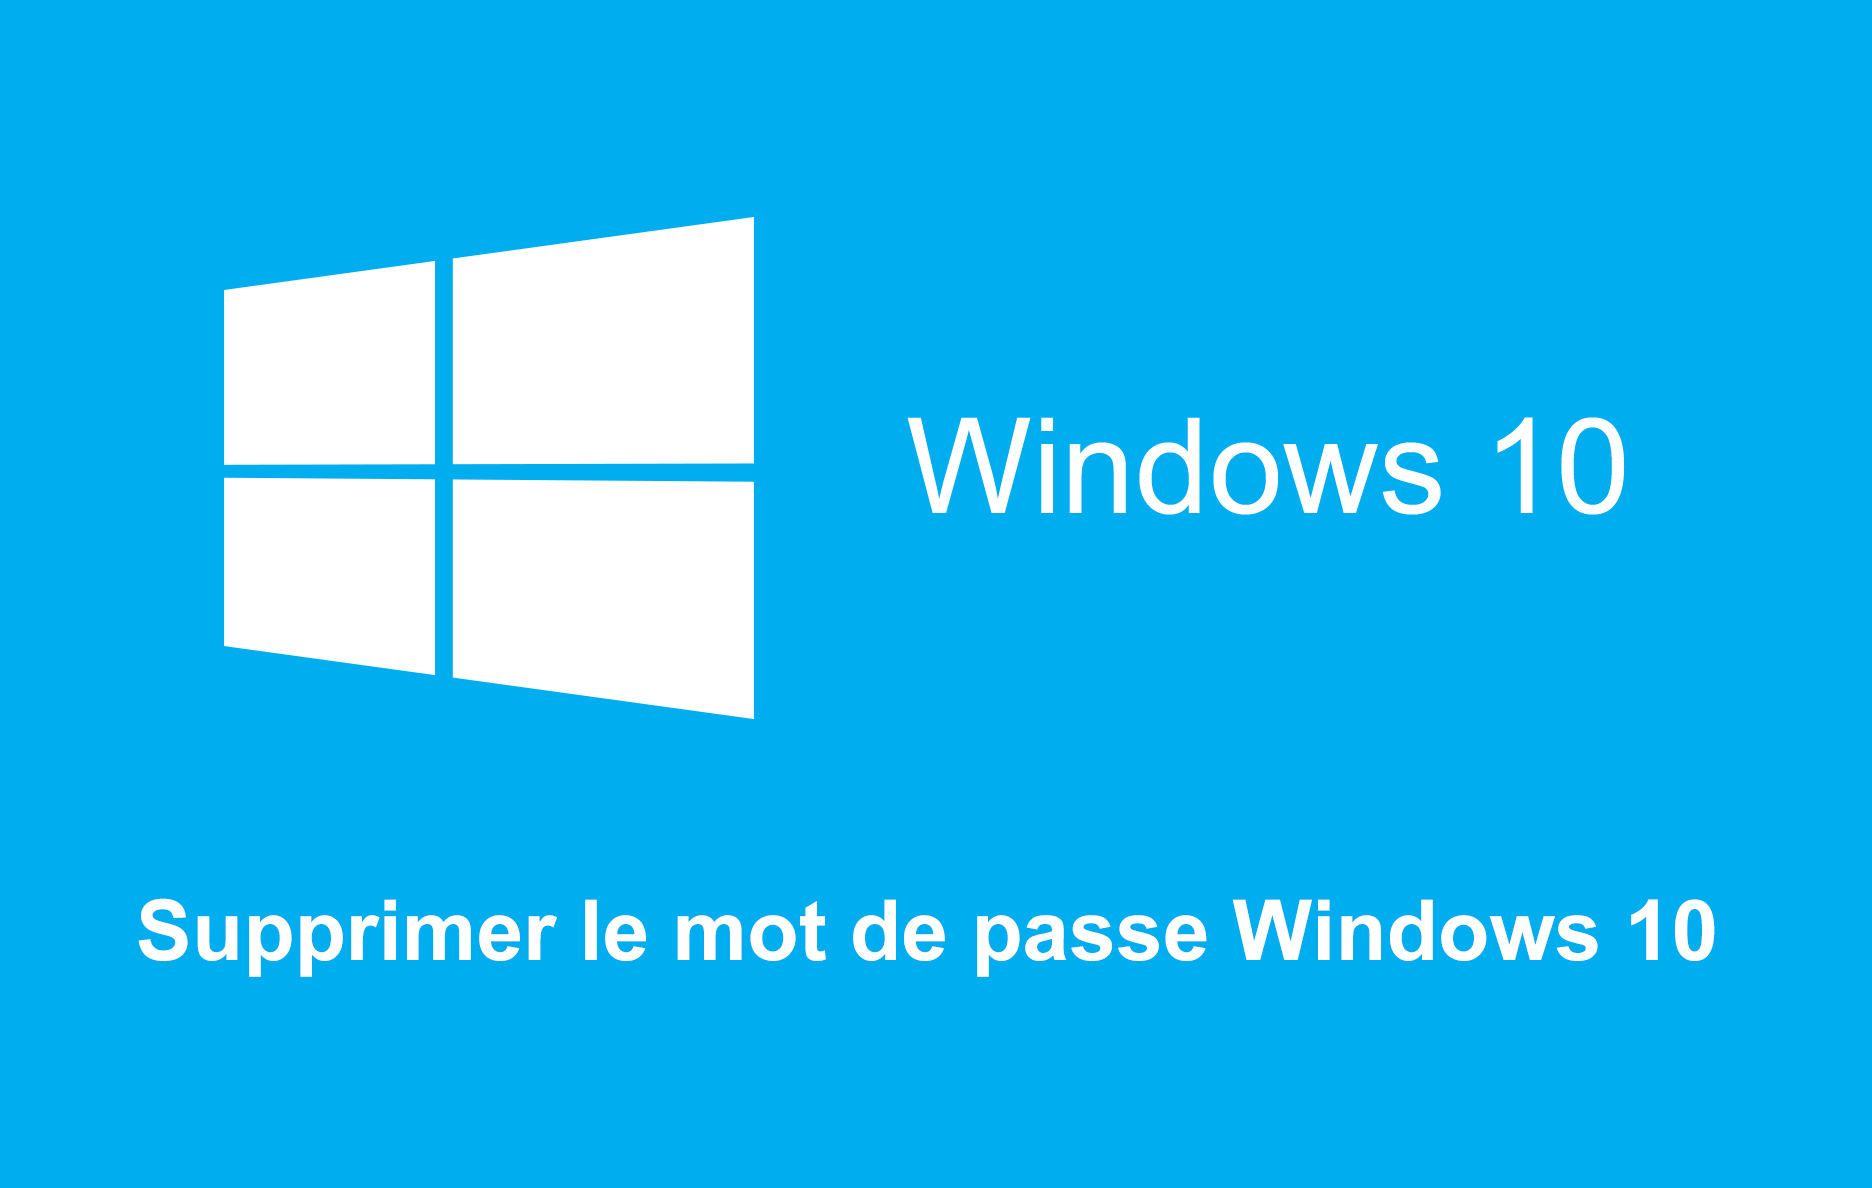 supprimer le mot de passe windows 10 et d u00e9marrer le pc